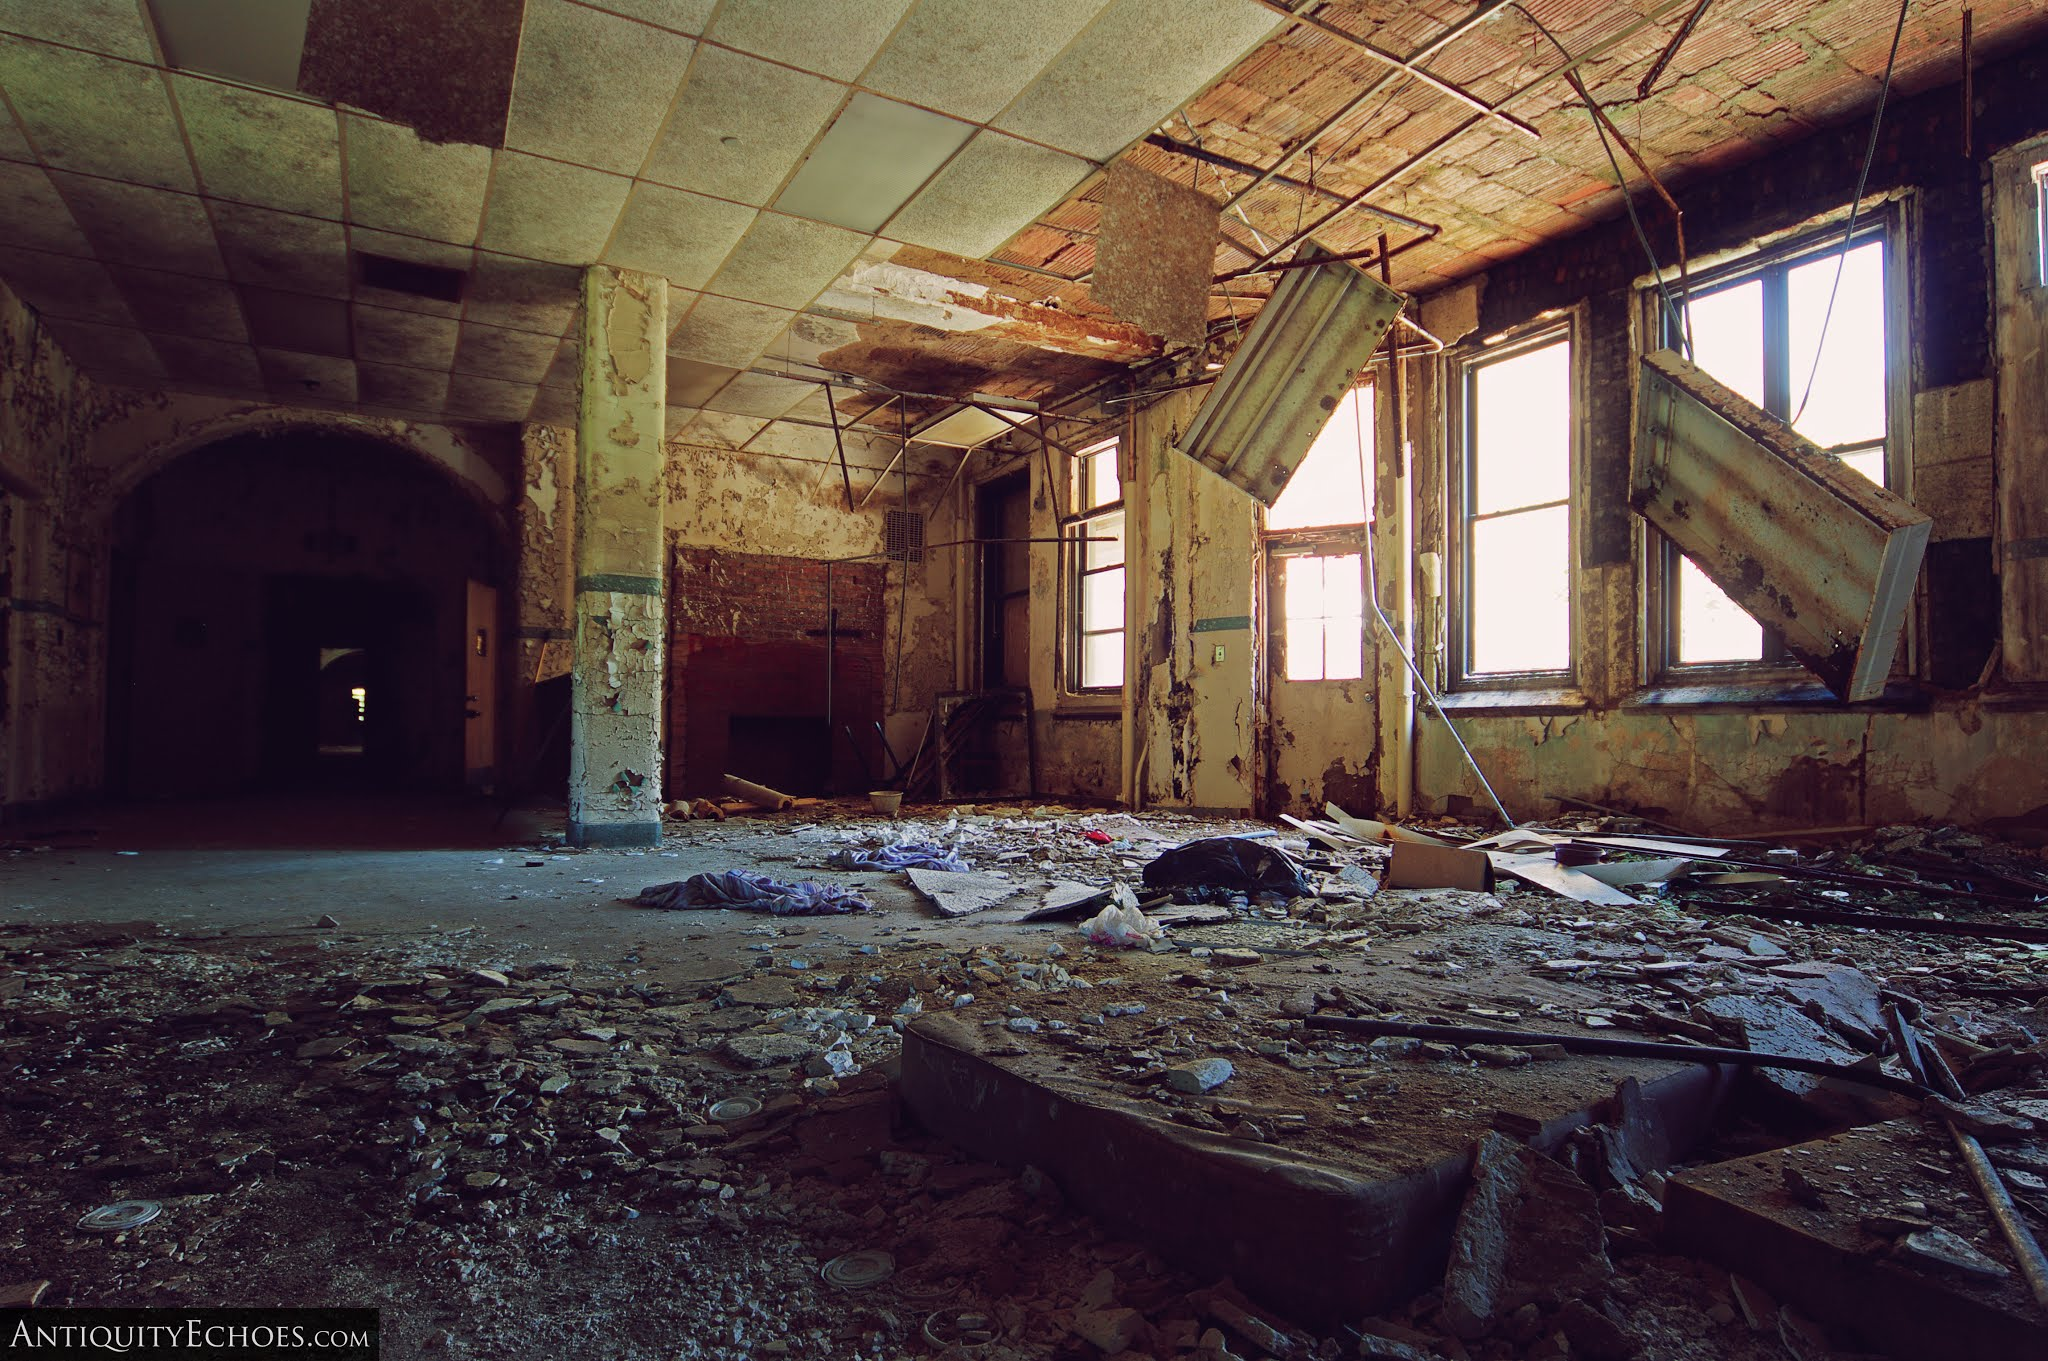 Overbrook Asylum - A Common Room Decaying Away